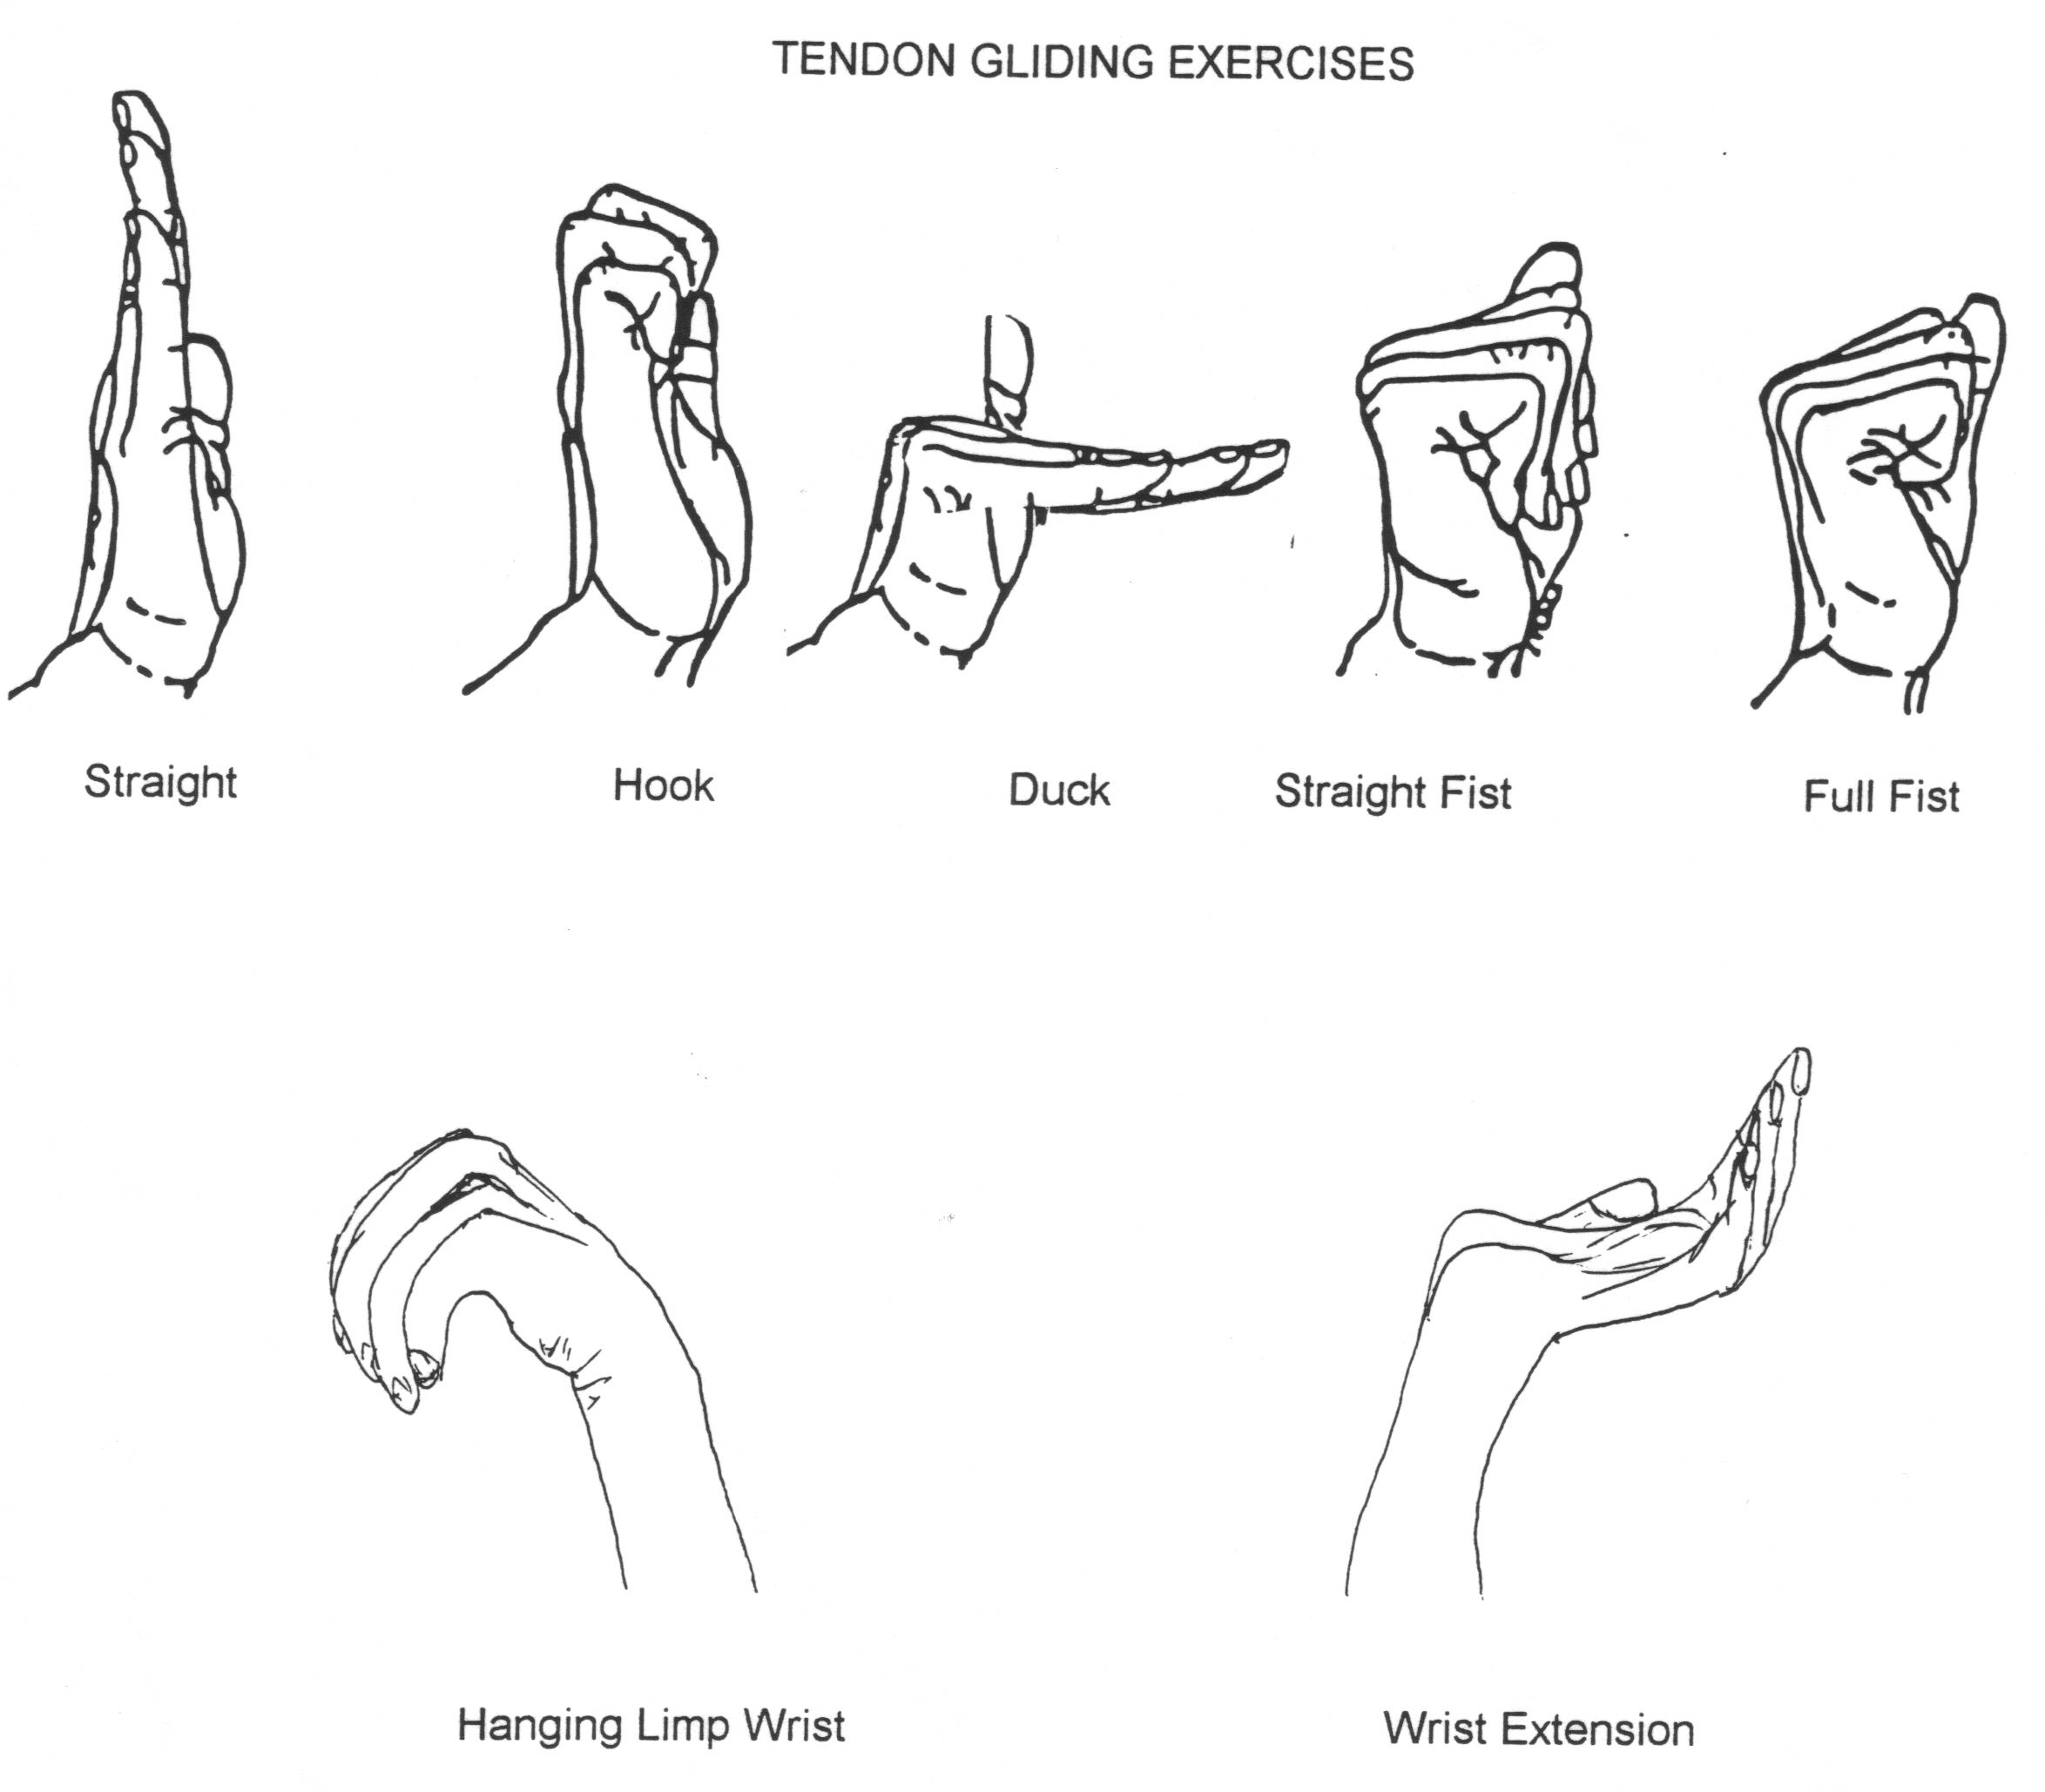 Pin Nerve Glide Exercises Are An Important Part Of A ...